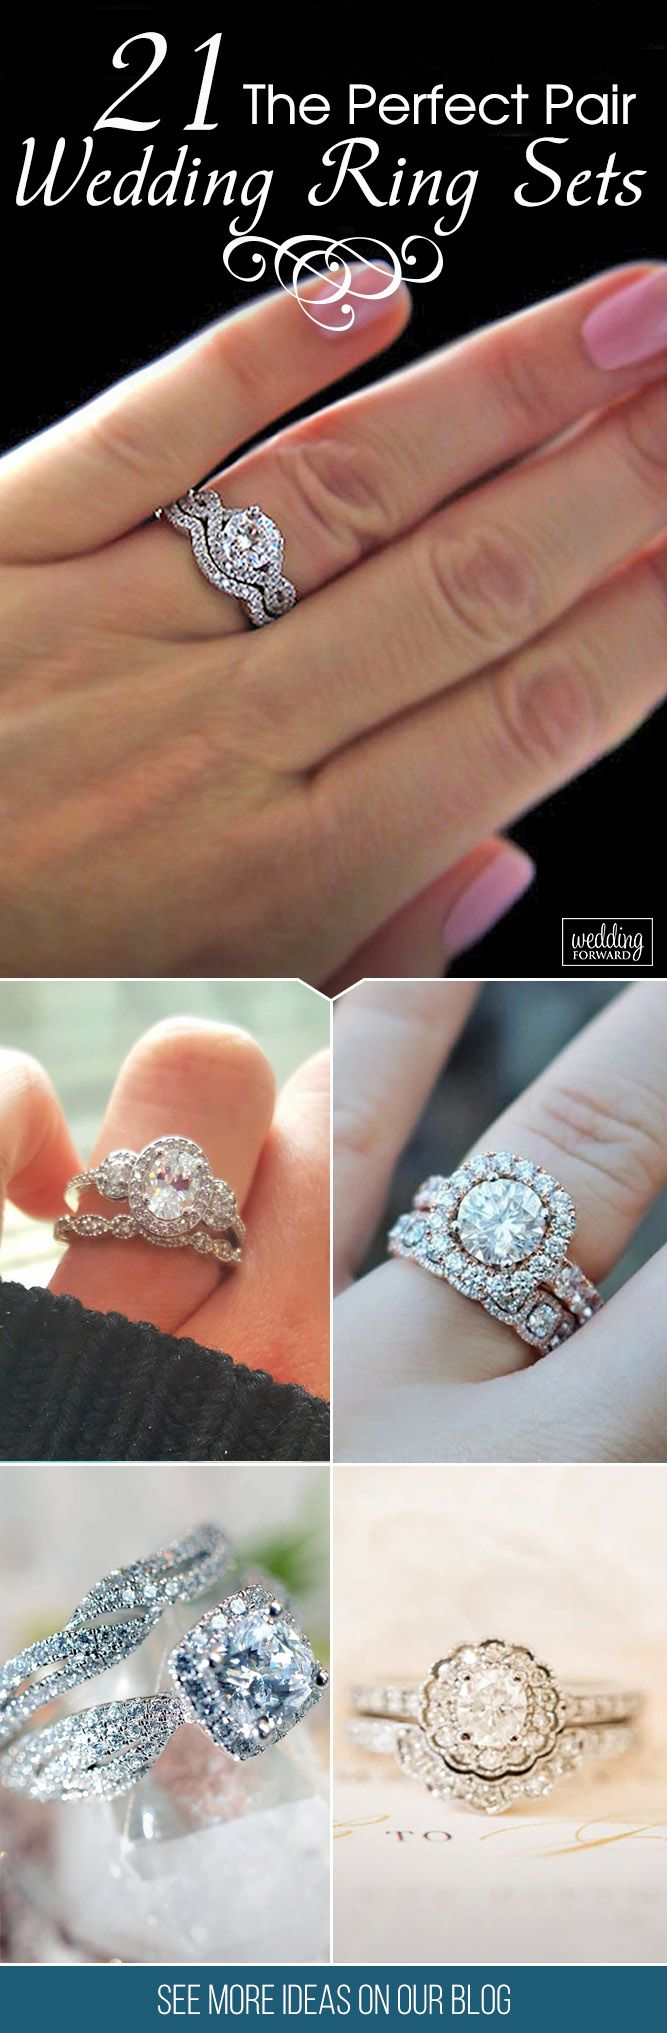 21 Wedding Ring Sets That Make The Perfect Pair ❤ Wedding ring sets become more and more popular among couples. They are not only create the perfect combination of engagement ring and wedding band, but also they are solves the problem of choice. See more: http://www.weddingforward.com/wedding-ring-sets/ #wedding #engagement #ring #sets